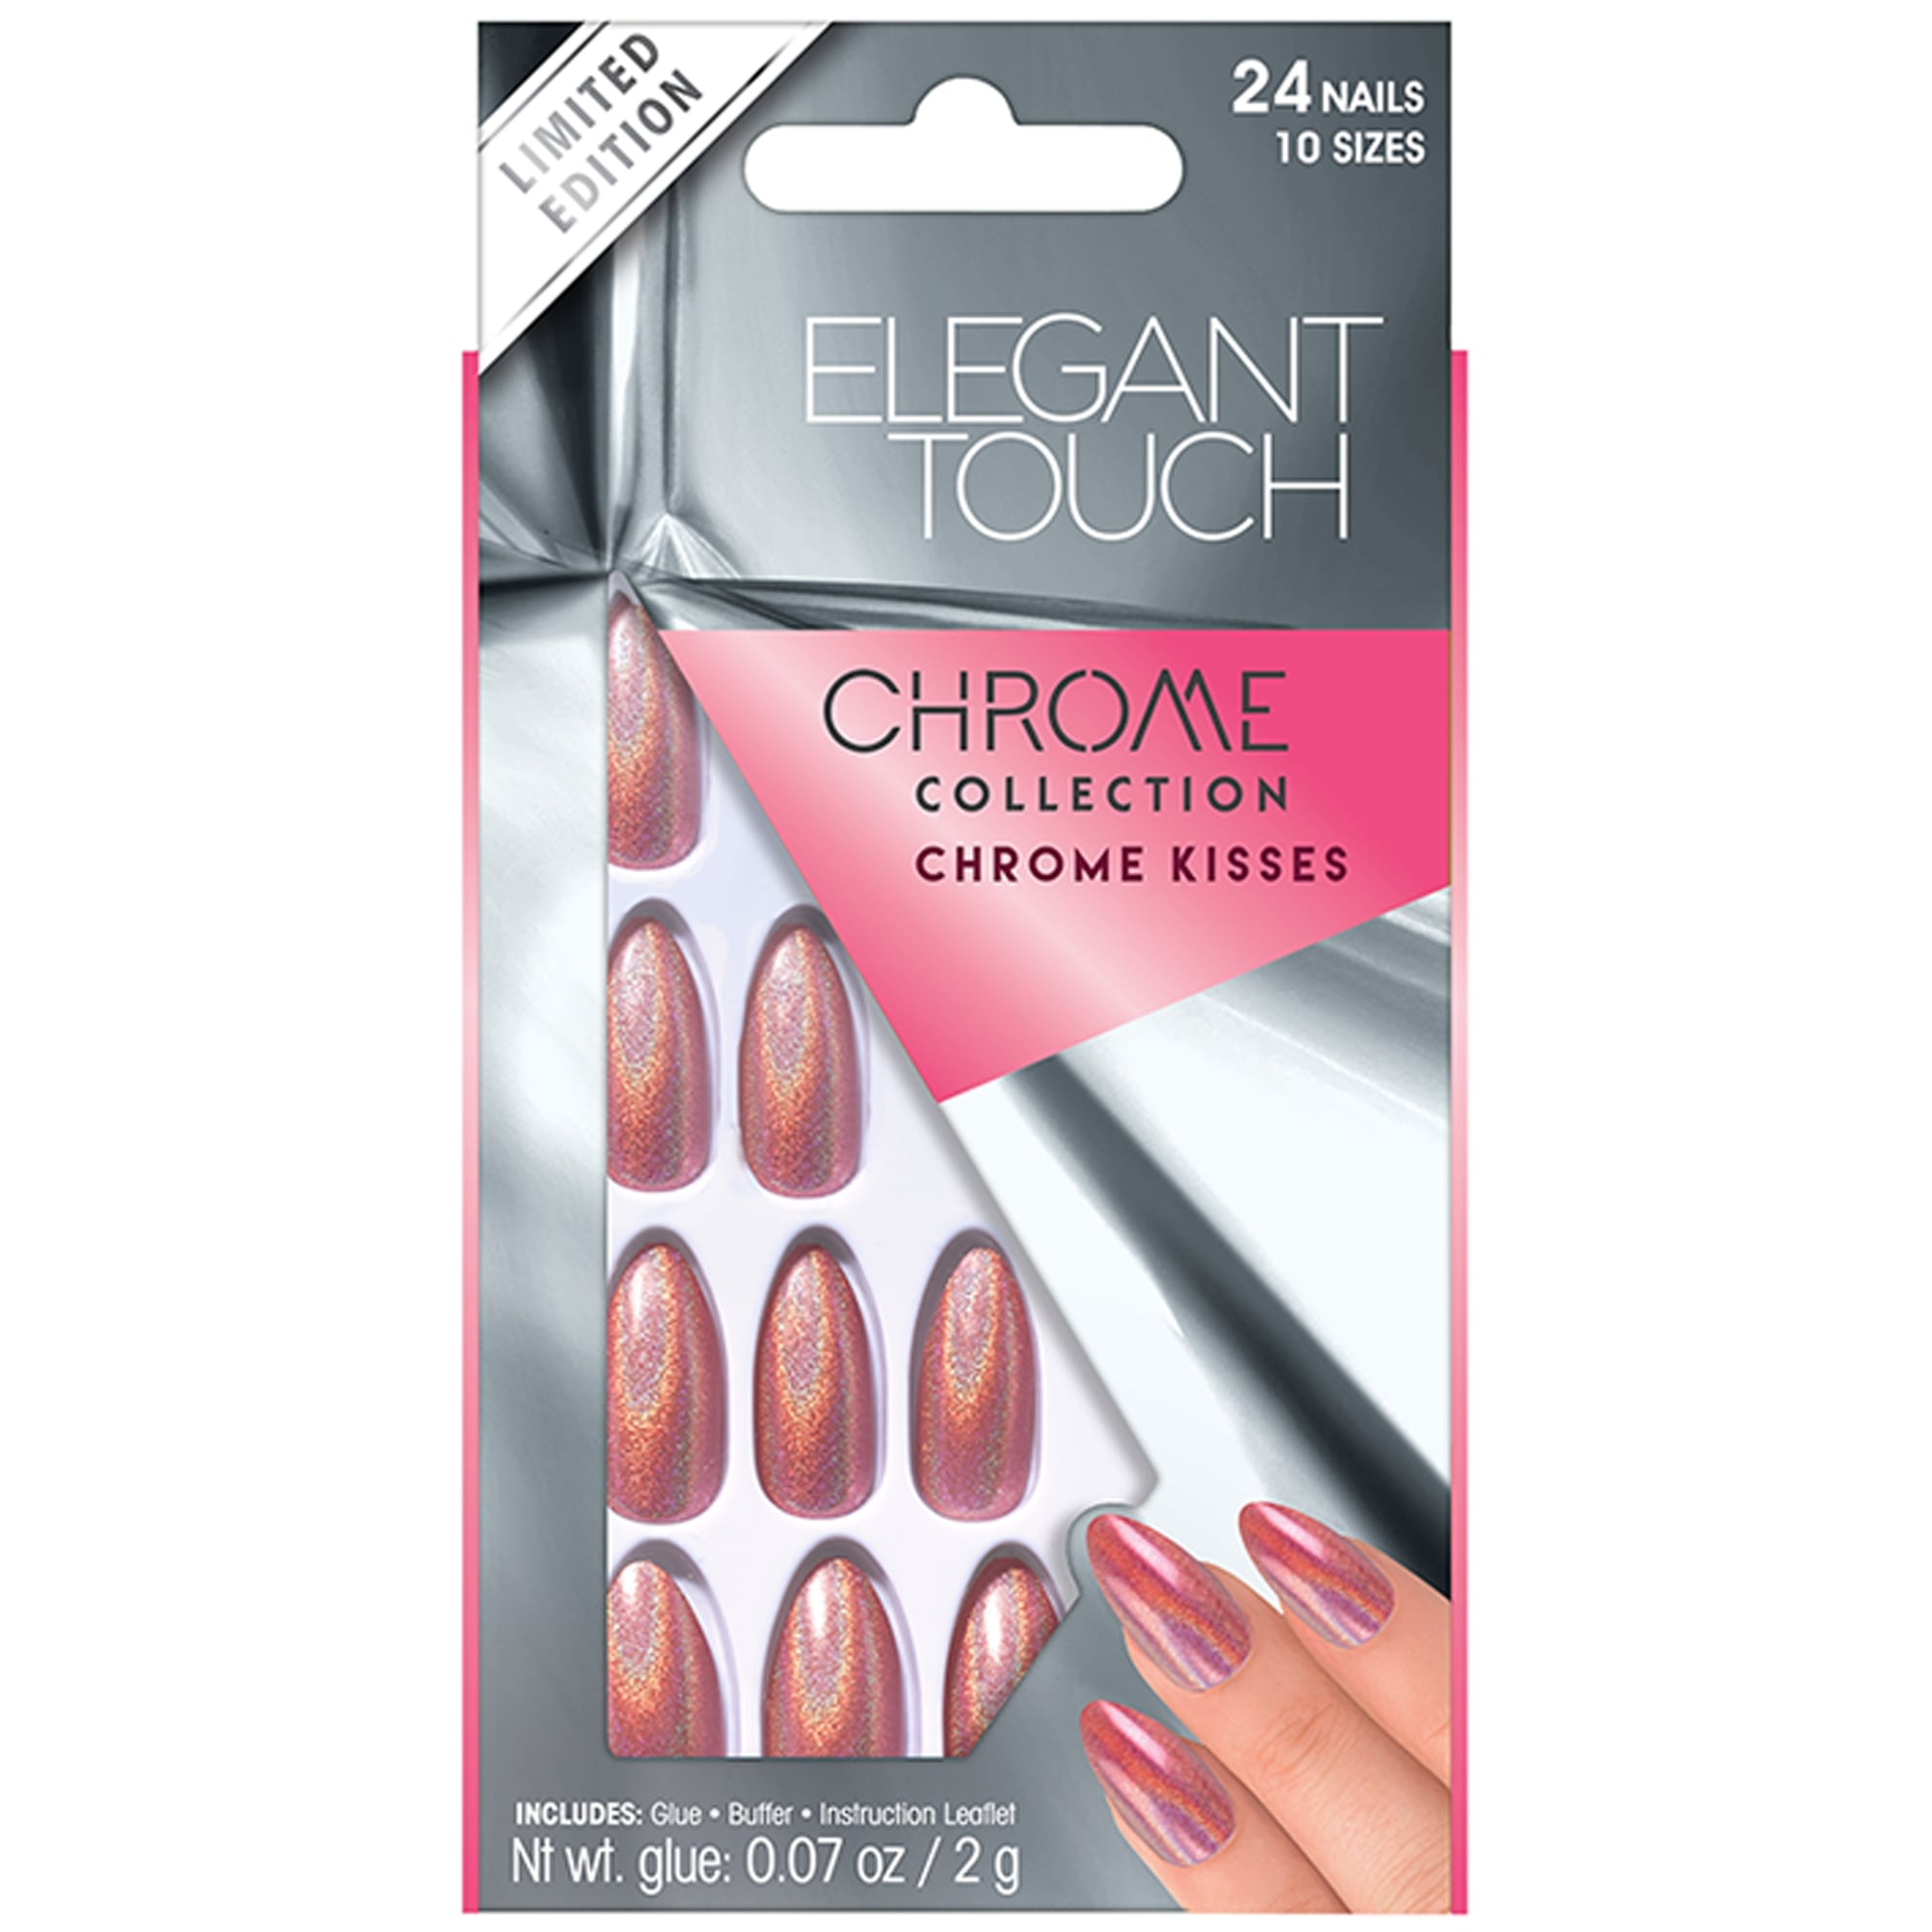 Cheap False Nails | Fake Salon Tips| Wholesale | Buy Online UK